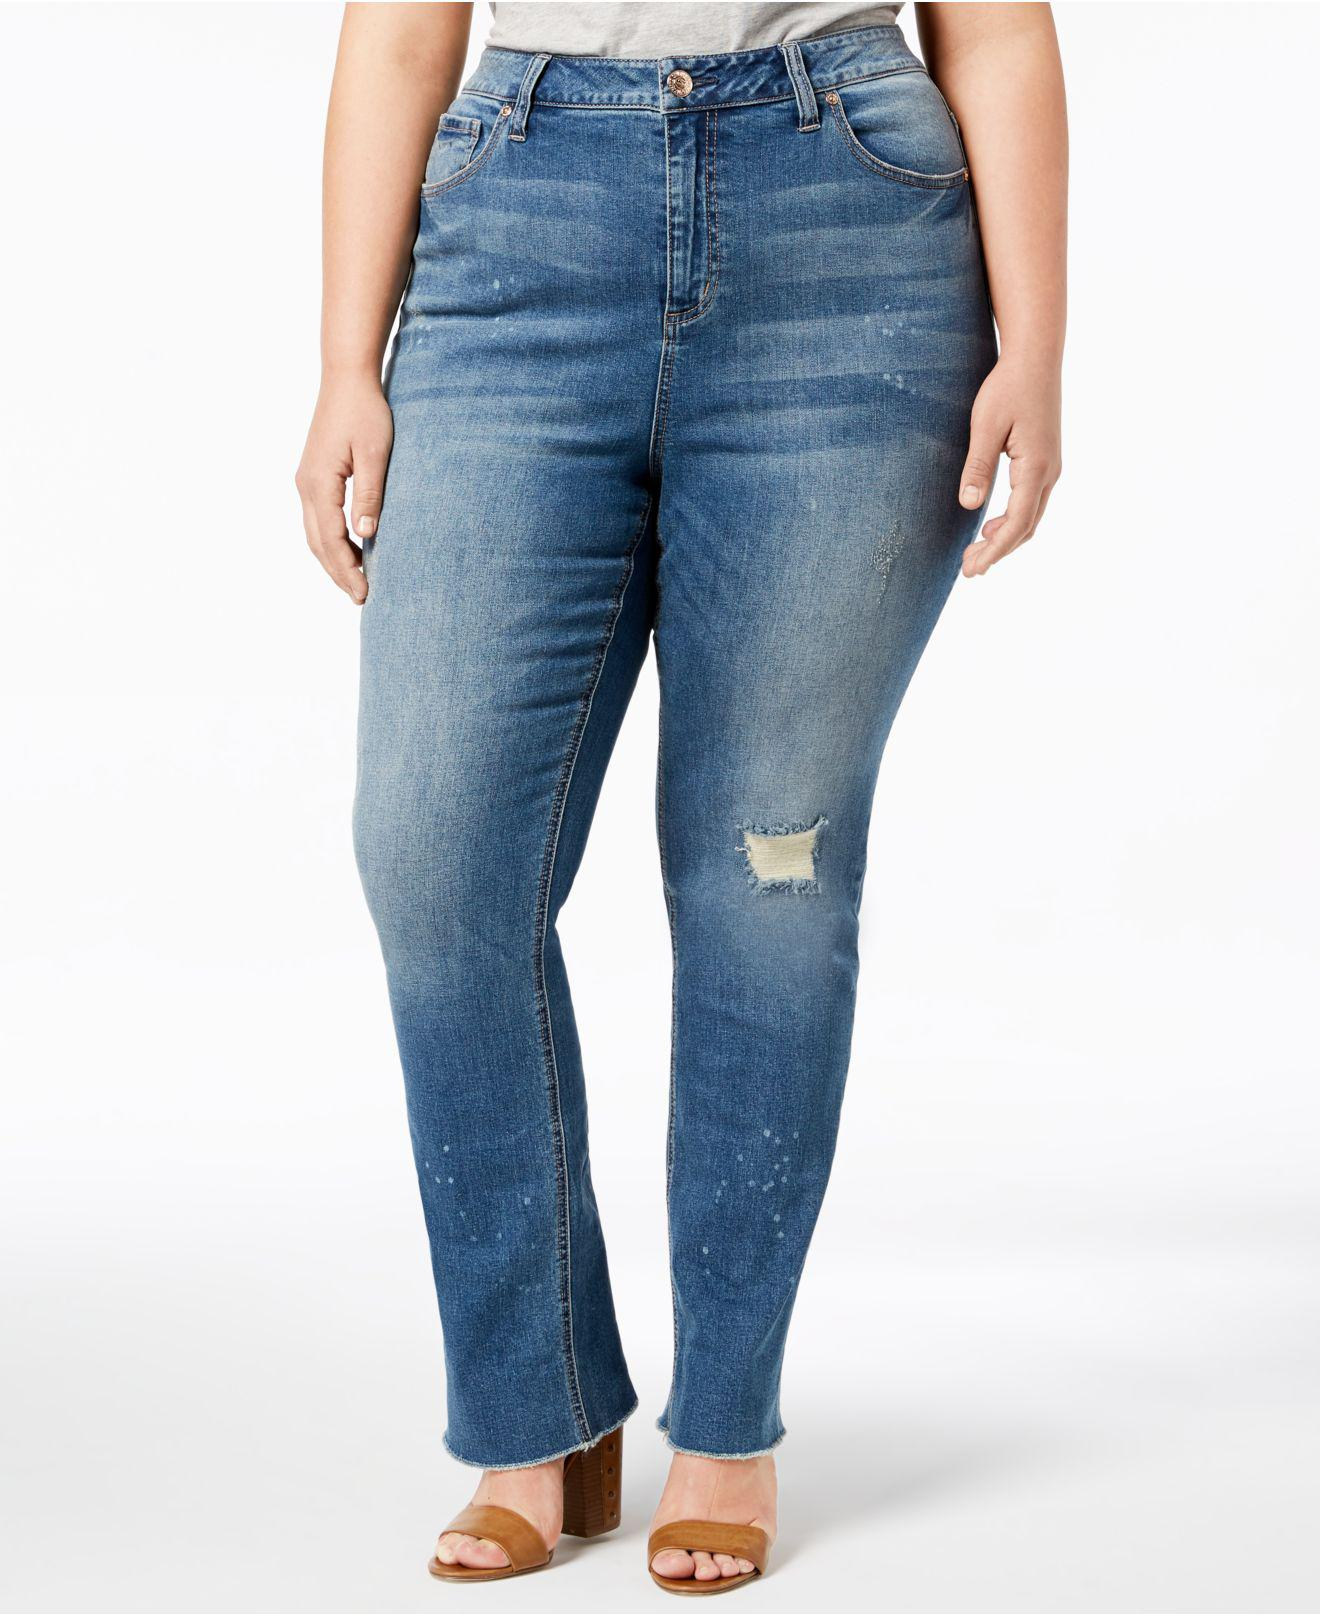 90da59b146 Lyst - Seven7 Seven7 Trendy Plus Size High-rise Jeans in Blue